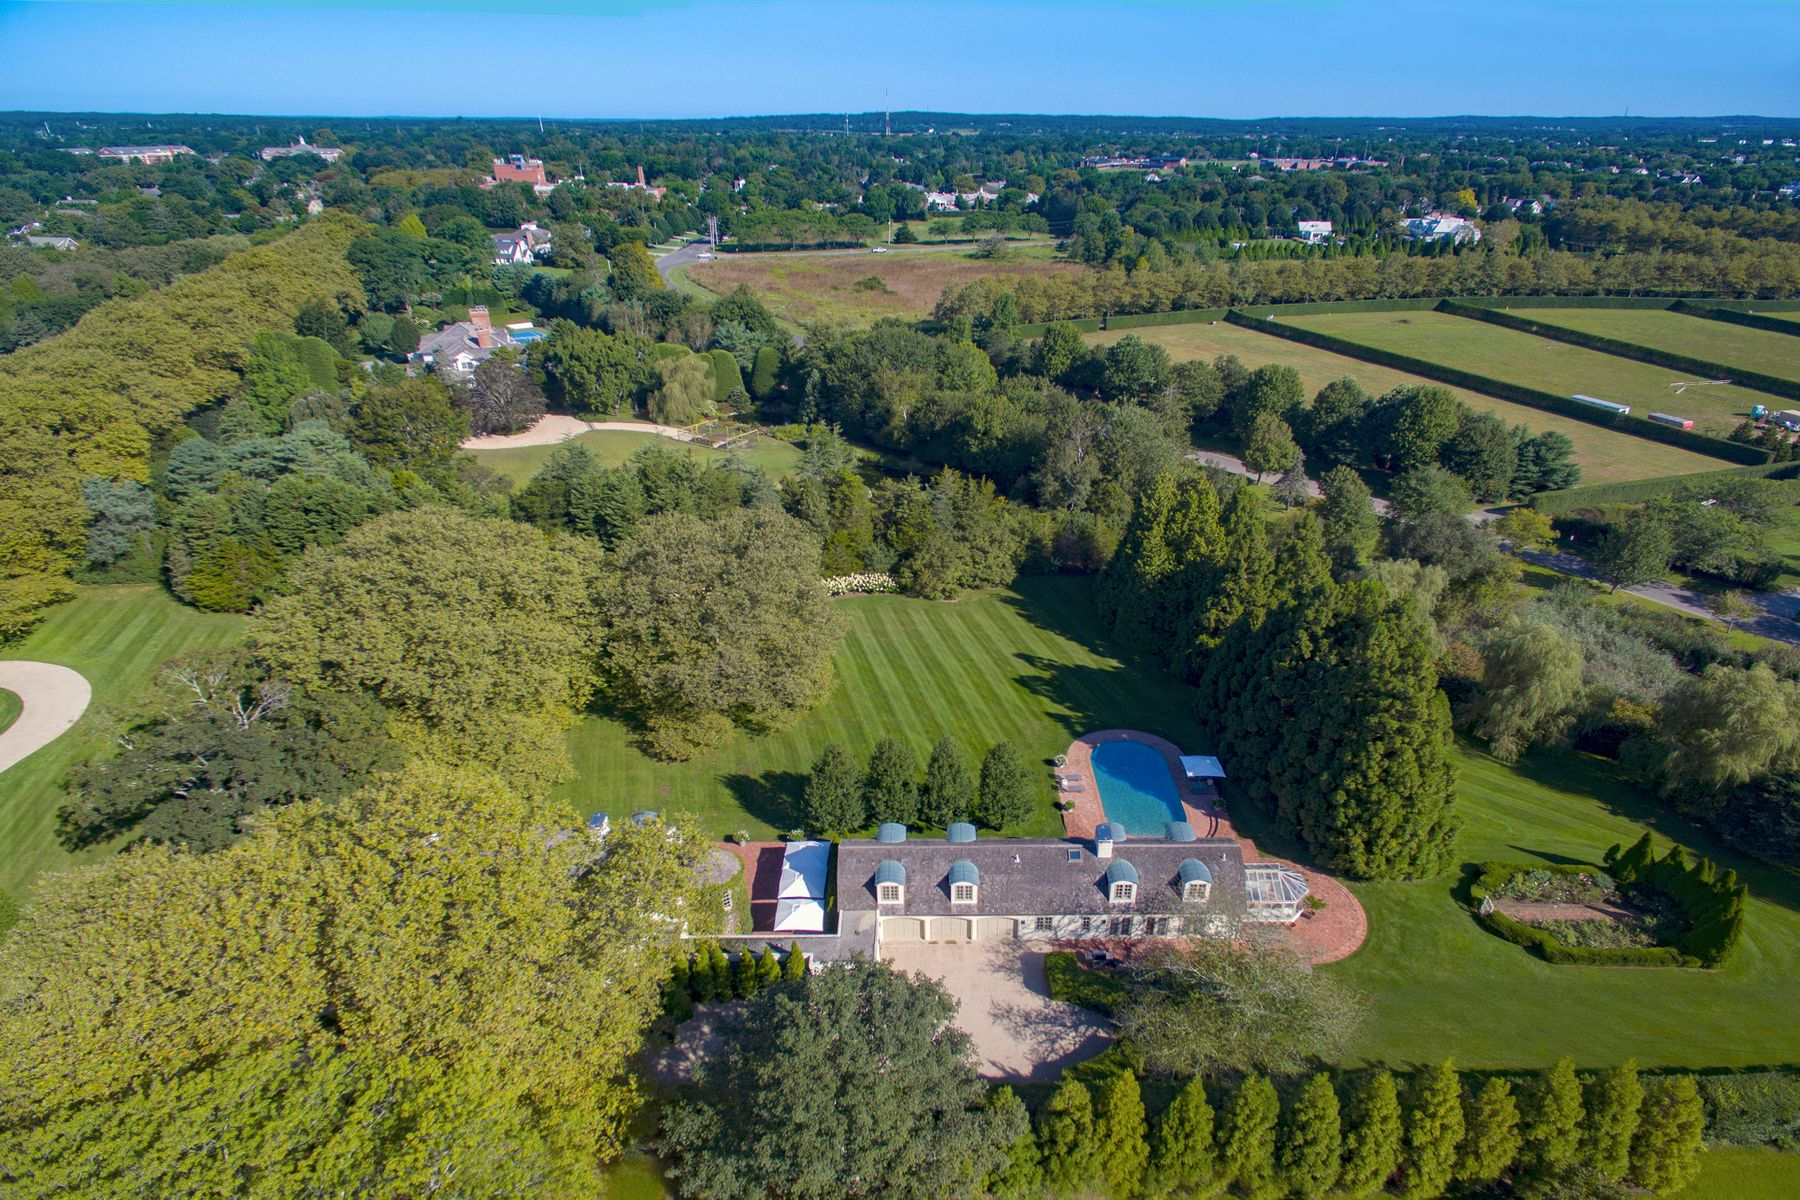 Property for Sale at Exquisite Landscape on Wyandanch Lane 80 Wyandanch Lane Southampton, New York 11968 United States